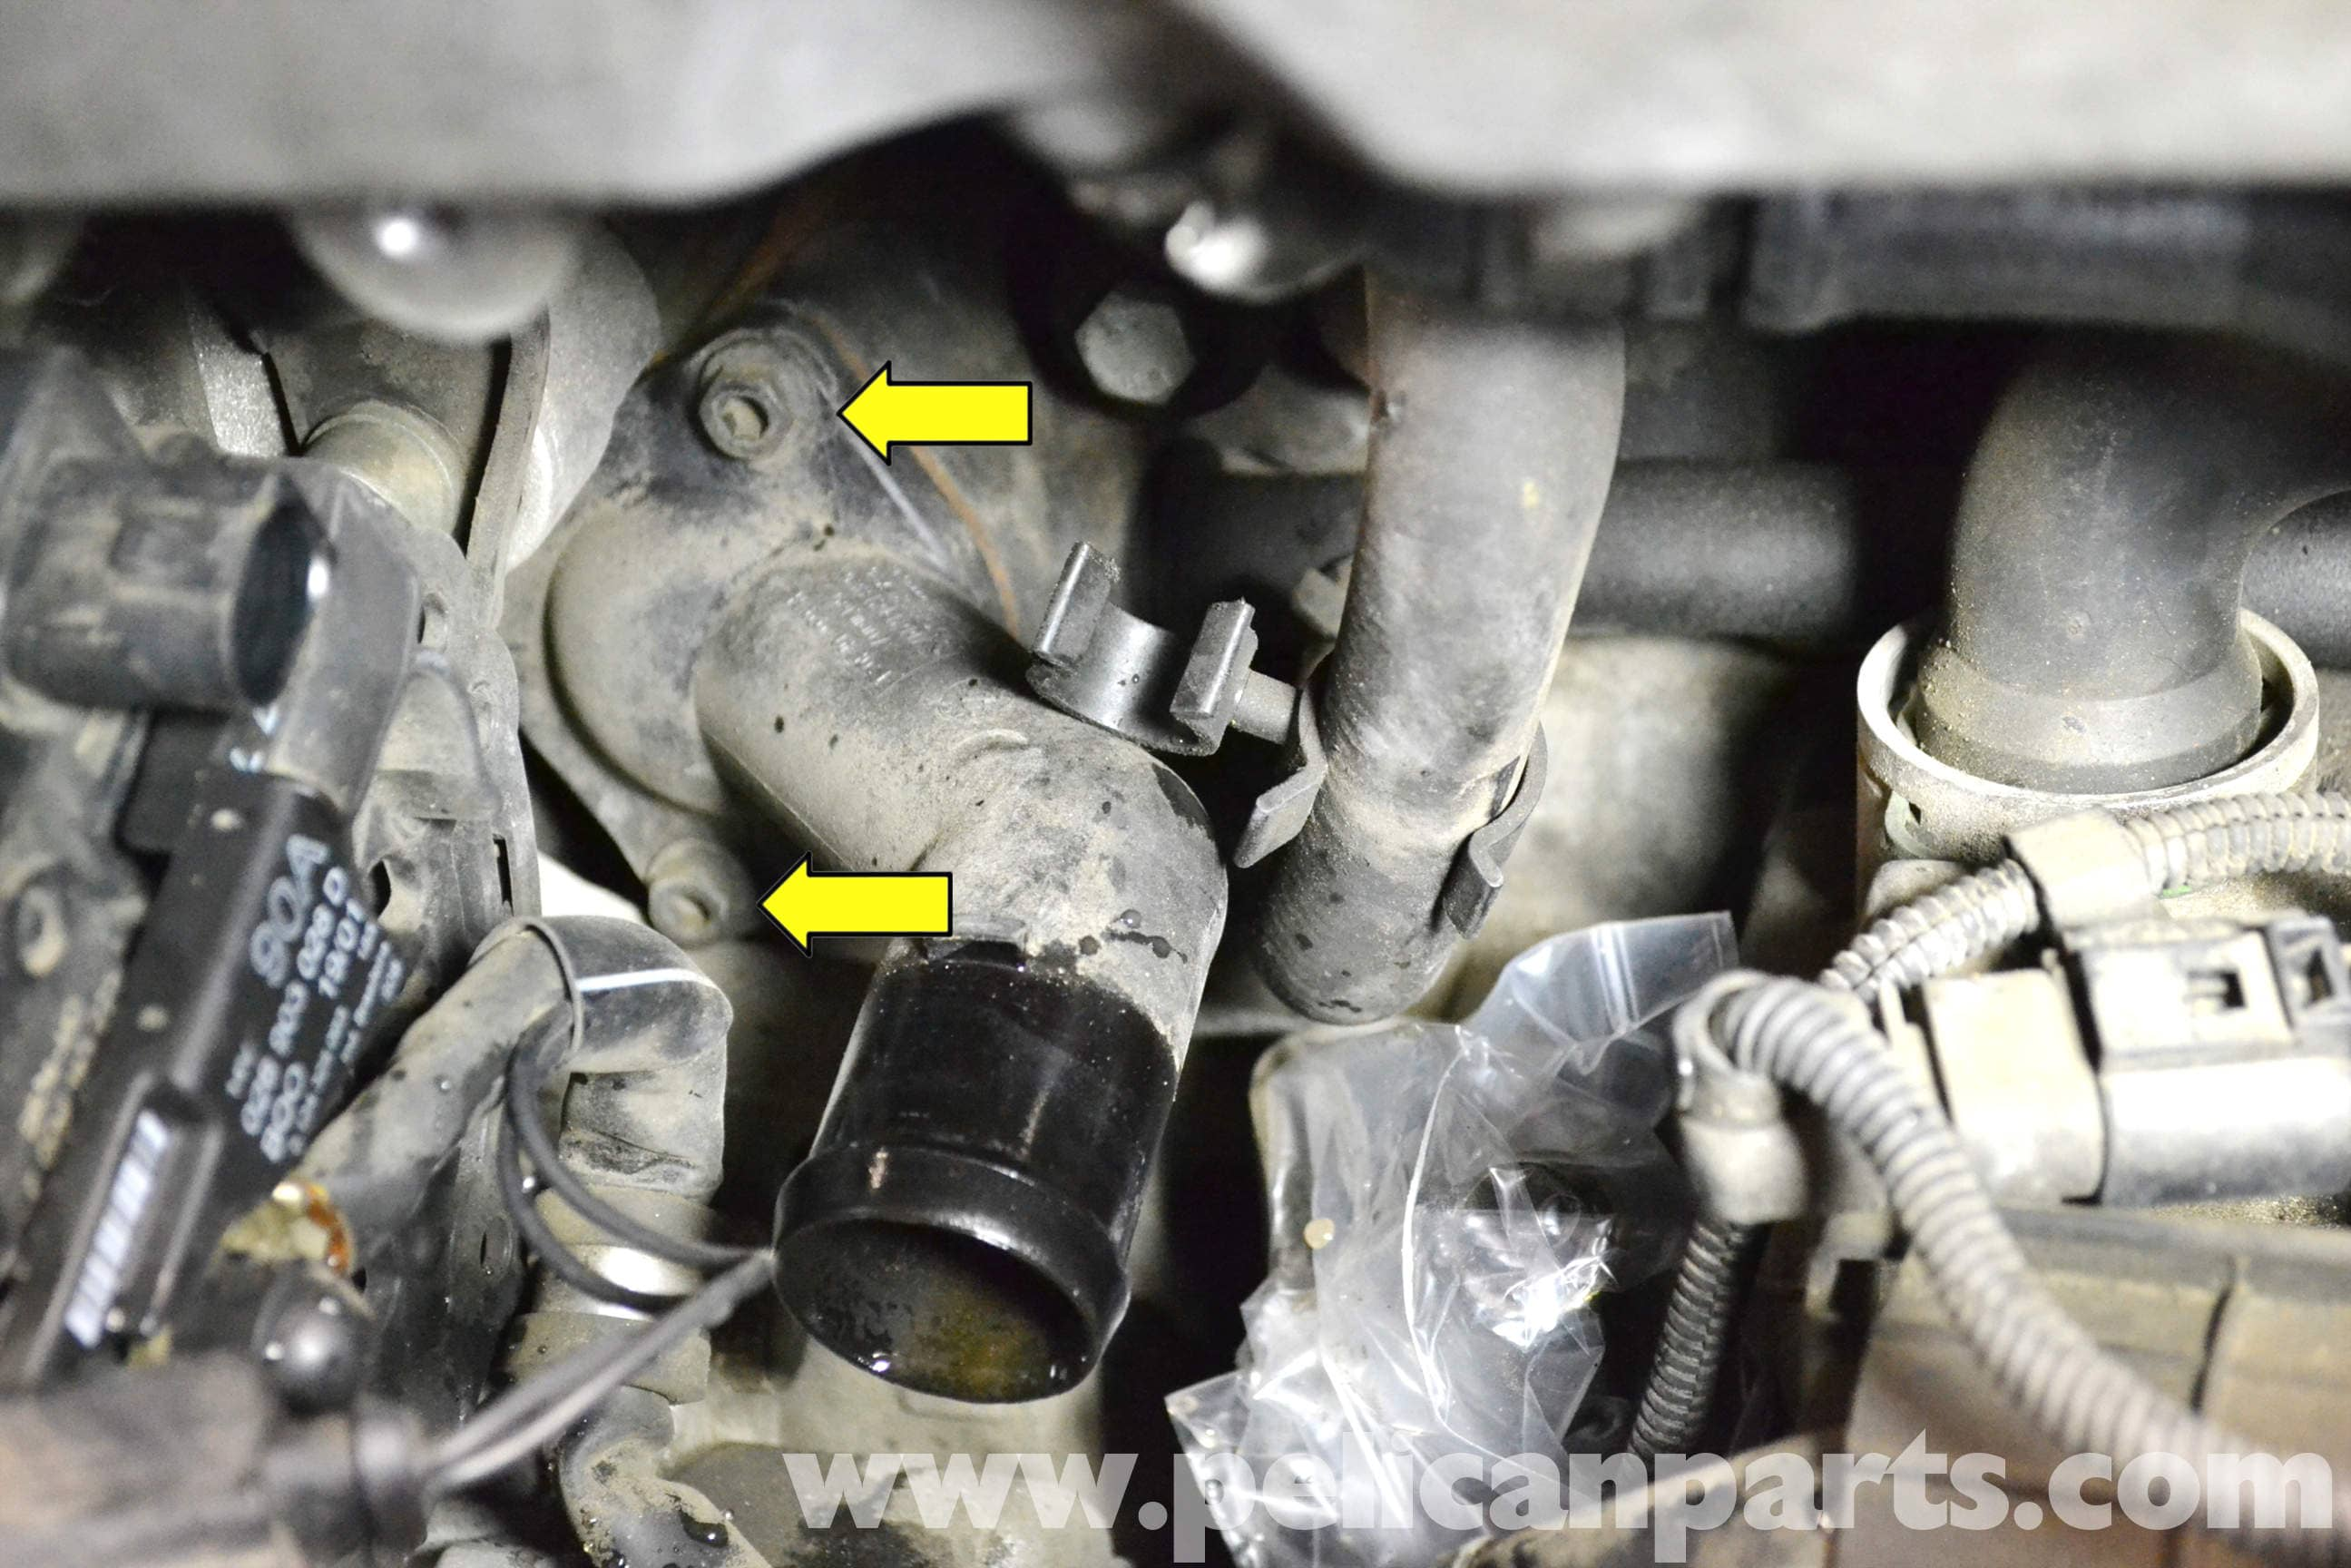 Thermostat Golf 4 : volkswagen golf gti mk iv thermostat replacement 1999 2005 pelican parts diy maintenance article ~ Gottalentnigeria.com Avis de Voitures